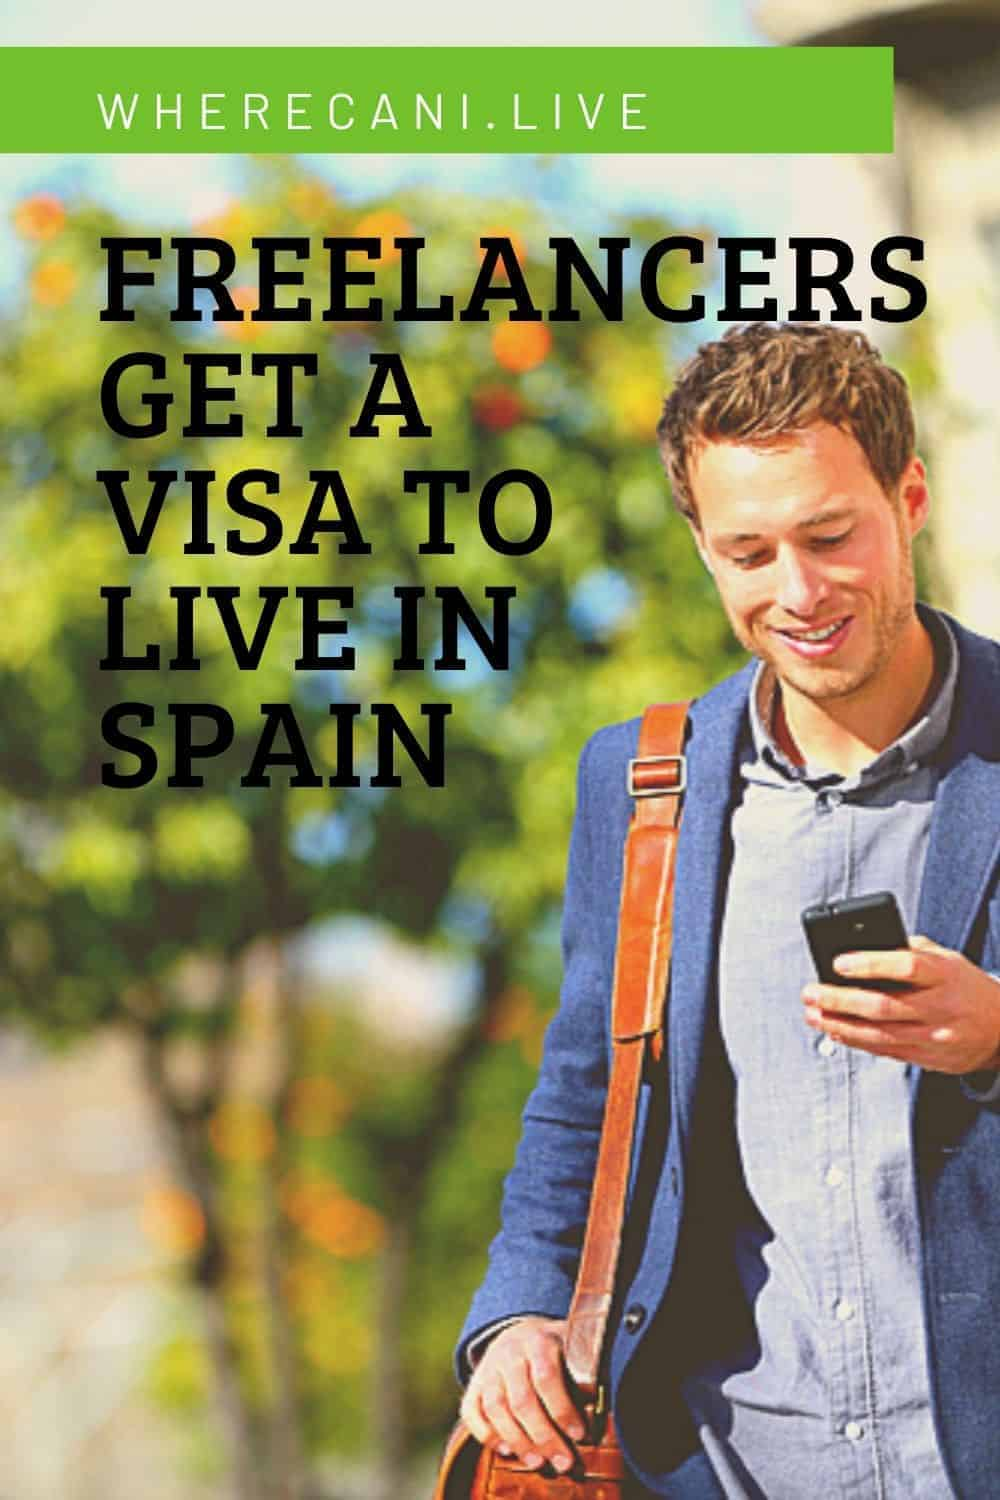 Are you a freelancer or digital nomad?  Come and live in Spain on the non lucrative visa.  #freelancer #digitalnomad #spain #visa #liveabroad #expat via @wherecanilive